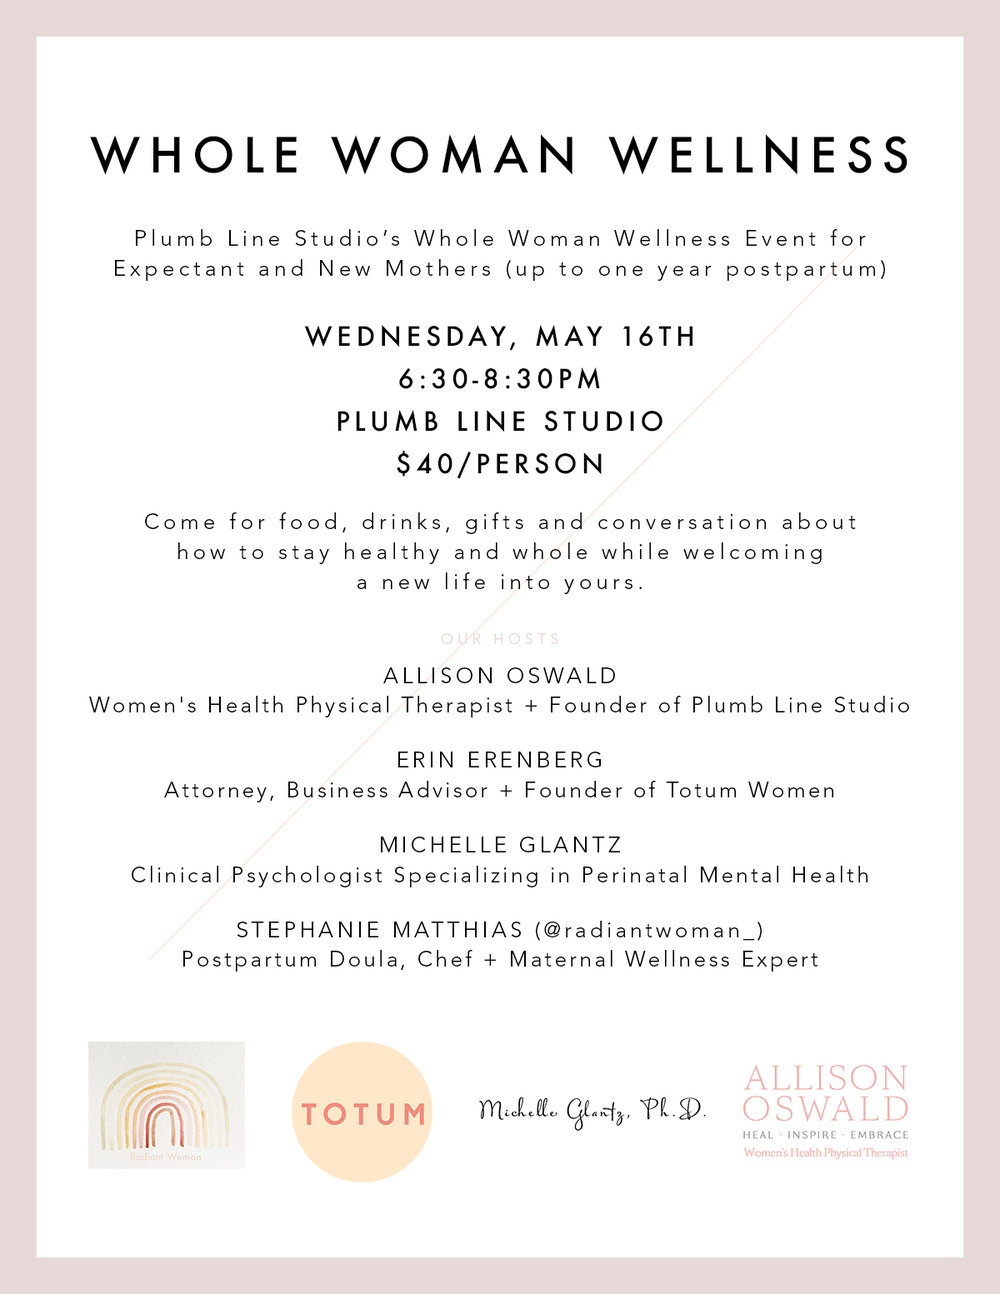 WHOLE WOMEN WELLNESS INVITE.jpg